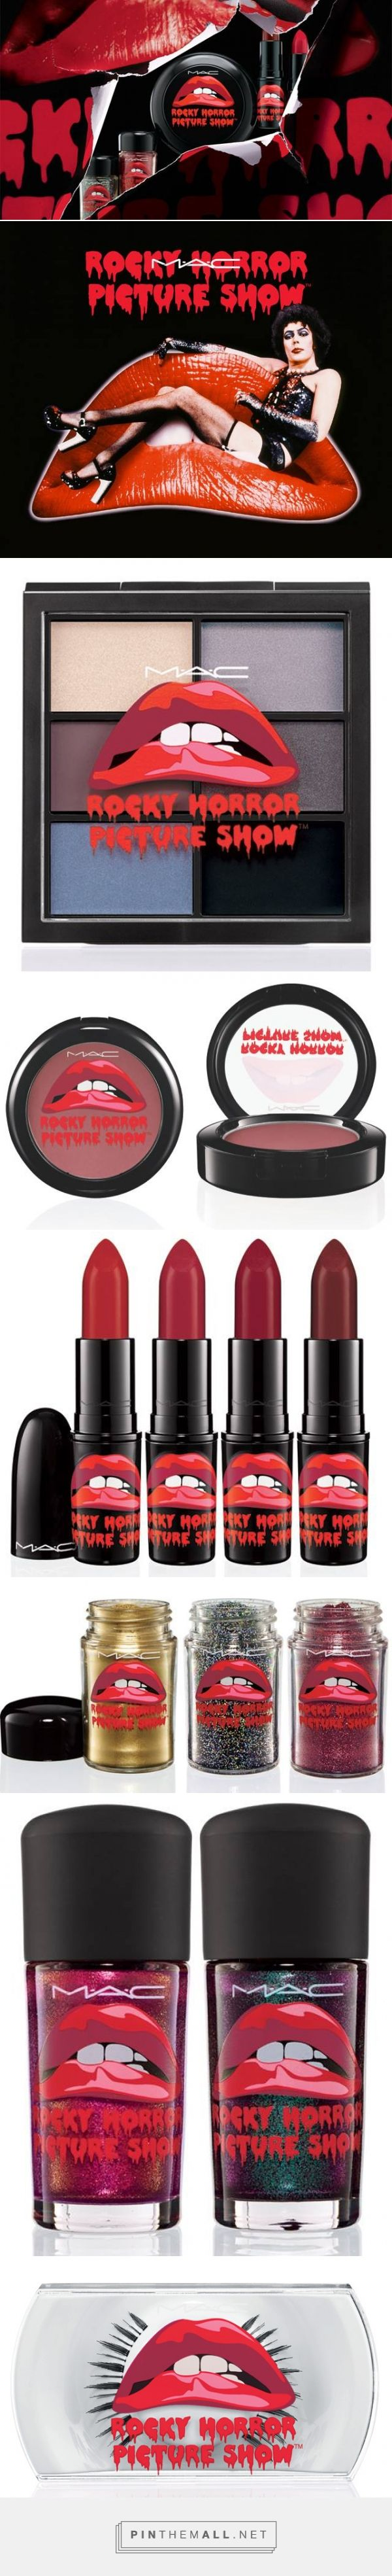 MAC x Rocky Horror Picture Show Fall 2014 Collection via Chic Profile curated by Packaging Diva PD. I love this packaging and perfect for Halloween.